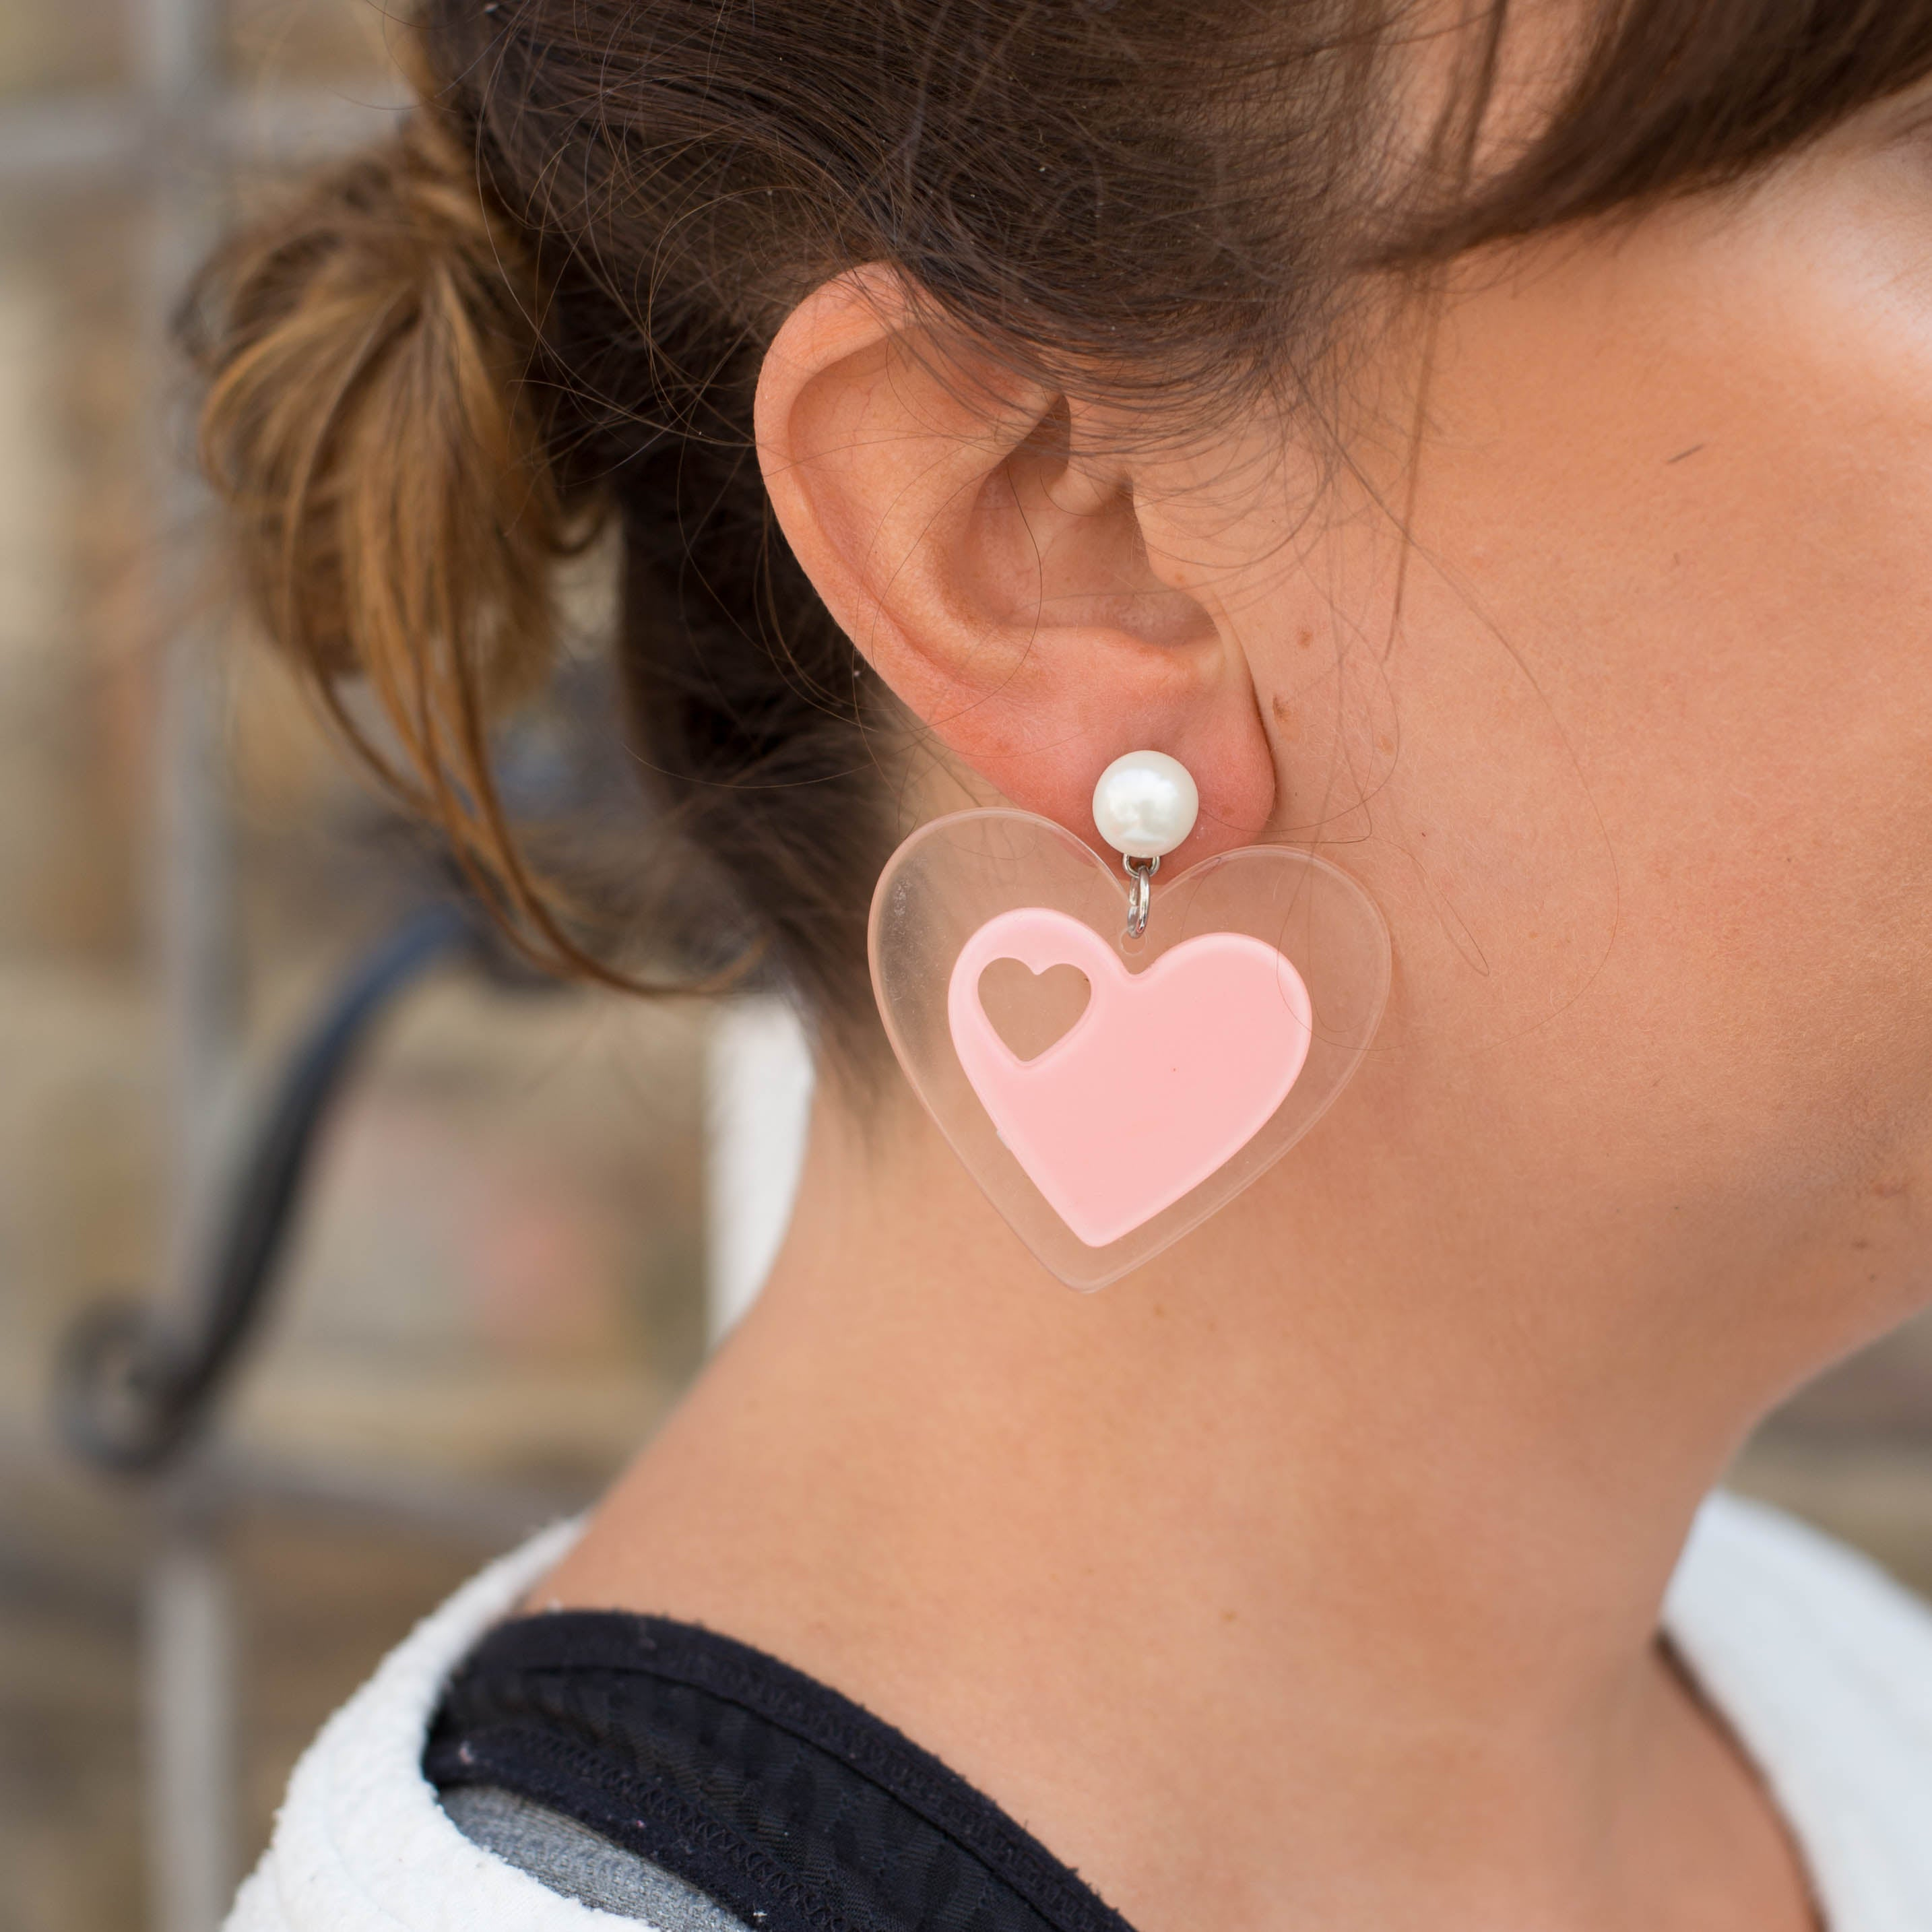 Translucent Heart Earrings